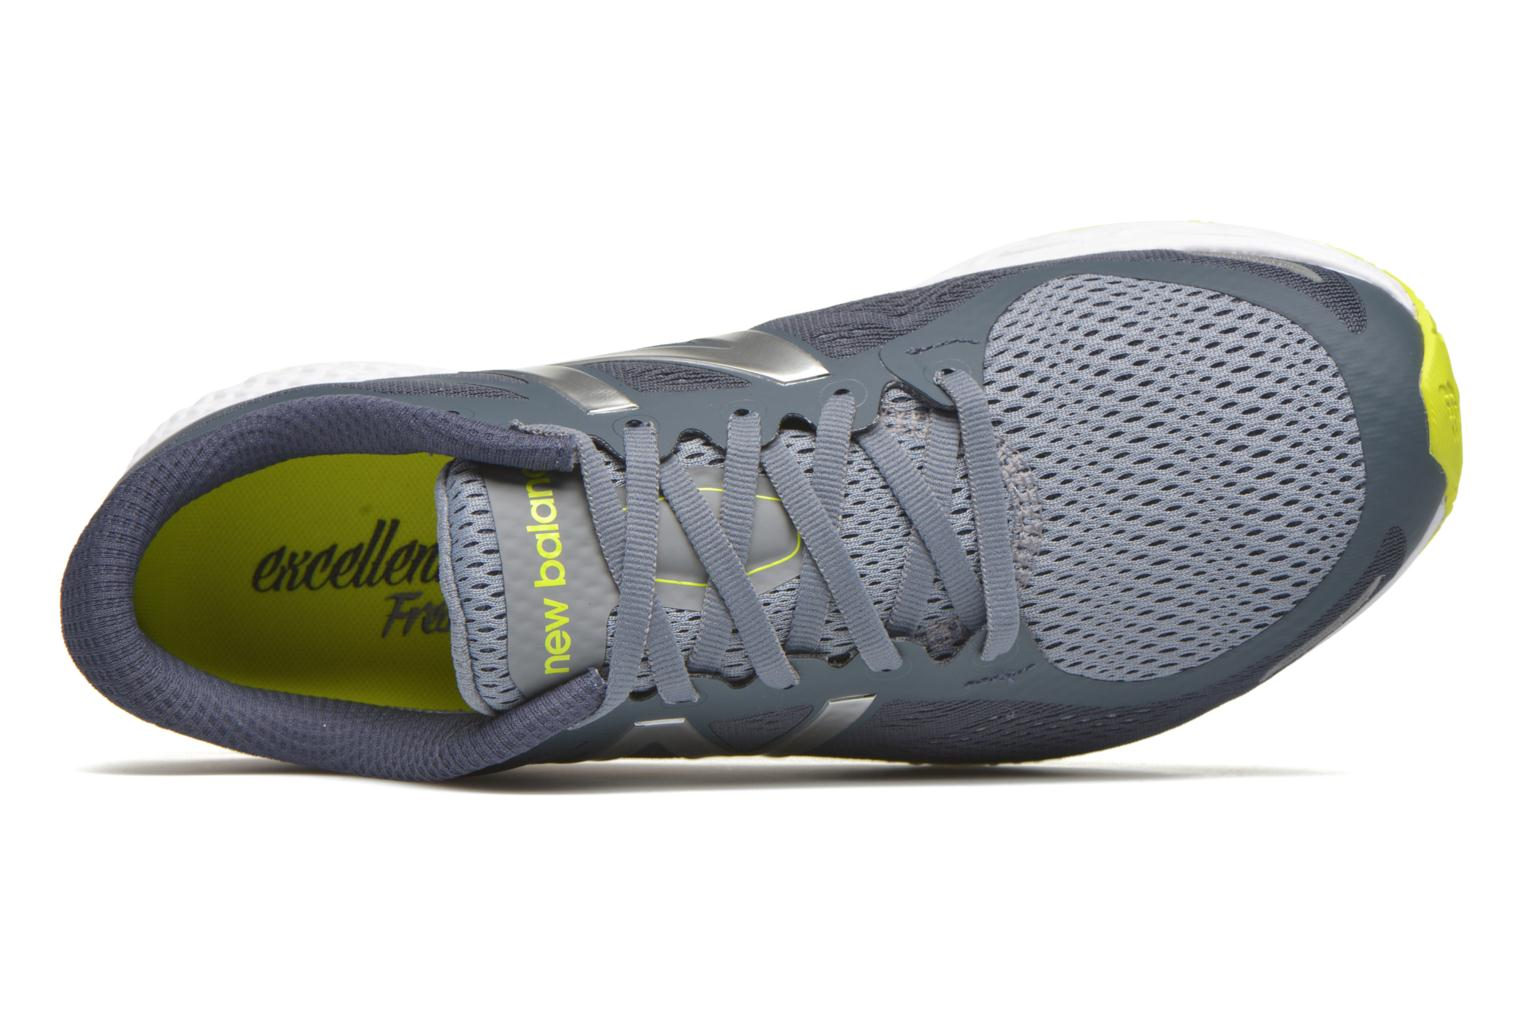 MZANT GR2 Grey/Yellow